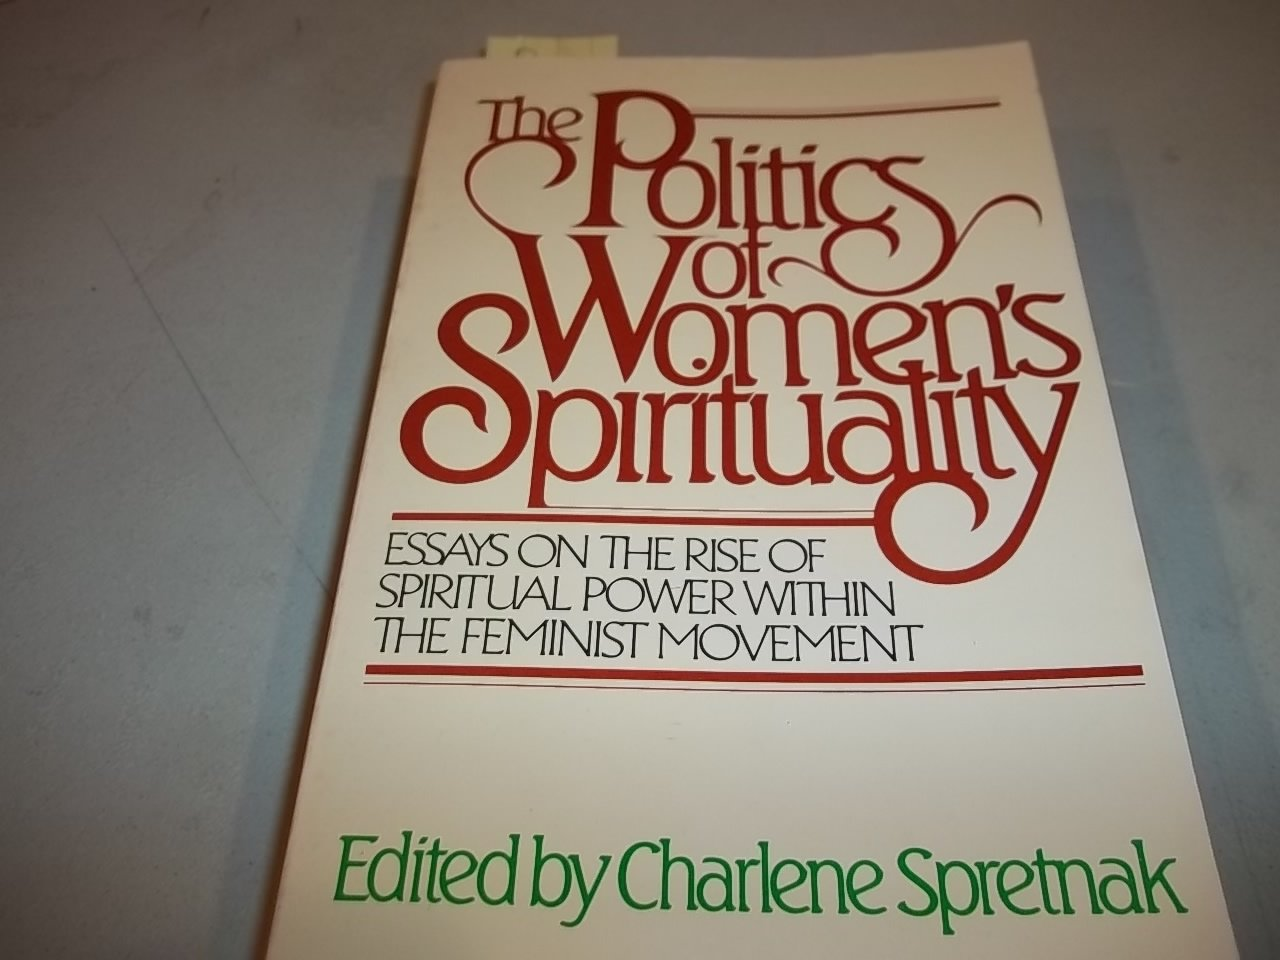 the politics of women s spirituality essays on the rise of the politics of women s spirituality essays on the rise of spiritual power in the feminist movement charlene spretnak com books